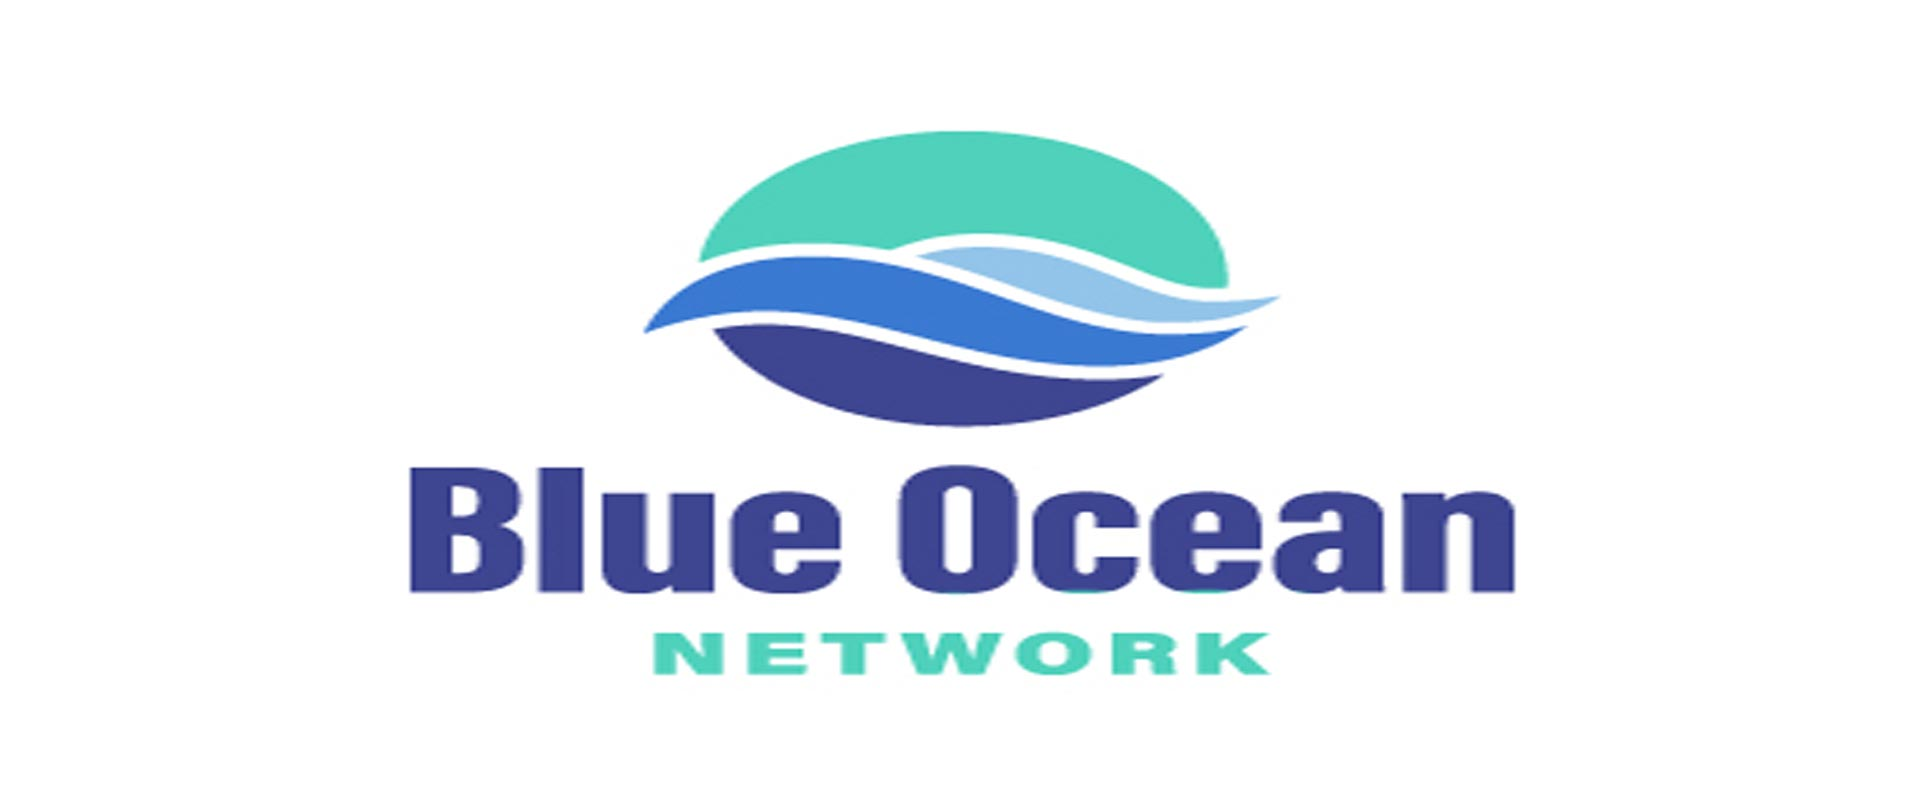 Blue-Ocean-Network-header